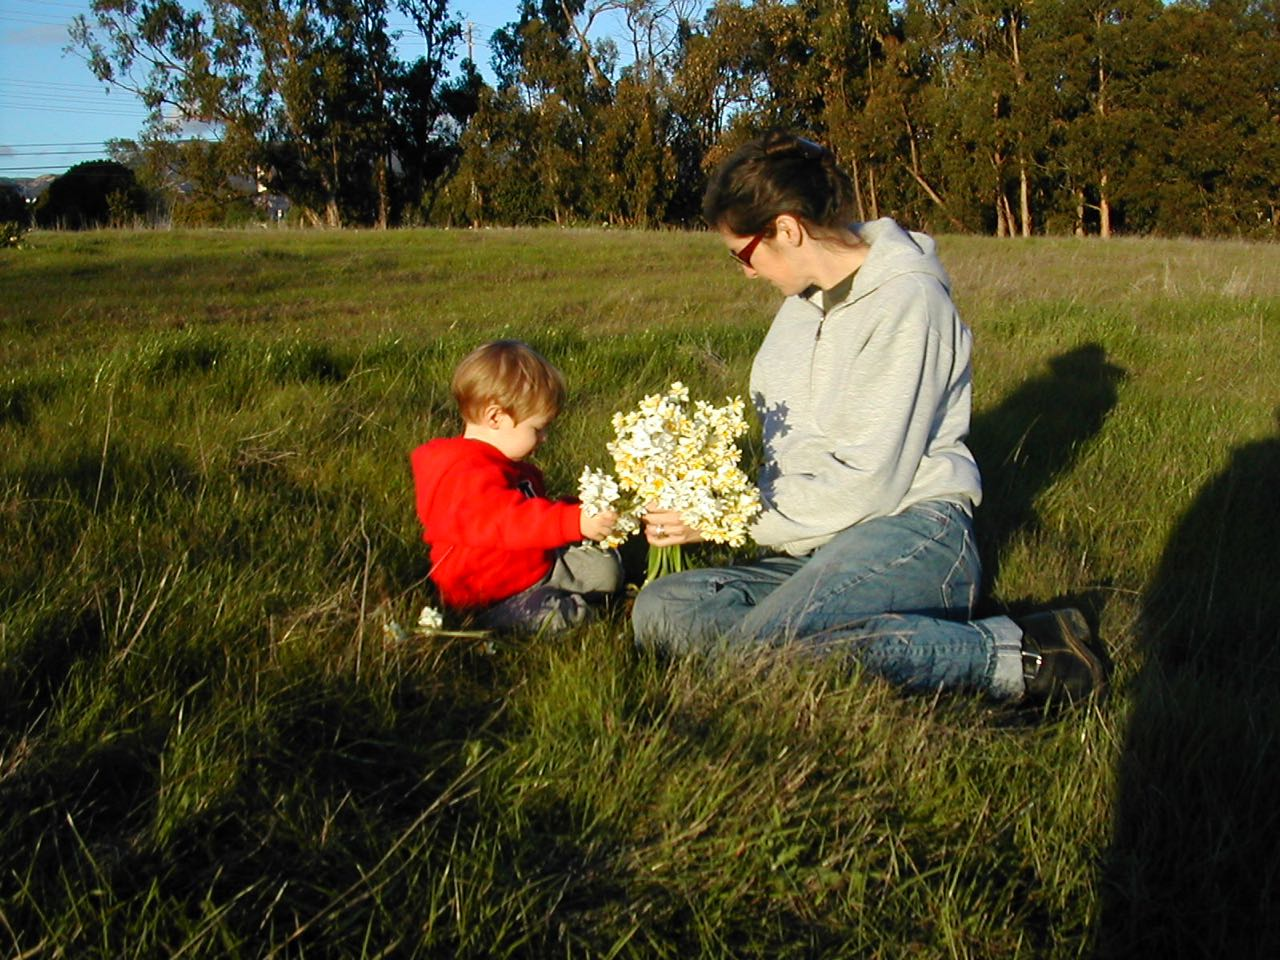 Every post needs a picture so here's one from 2003 of me and Jackson picking flowers after a rainstorm over at the Ellwood preserve, half of which is covered in condos now, but you can still walk through to see the monarch butterflies mating every January. The monarchs don't care if you watch. Who knows, maybe they're into it.